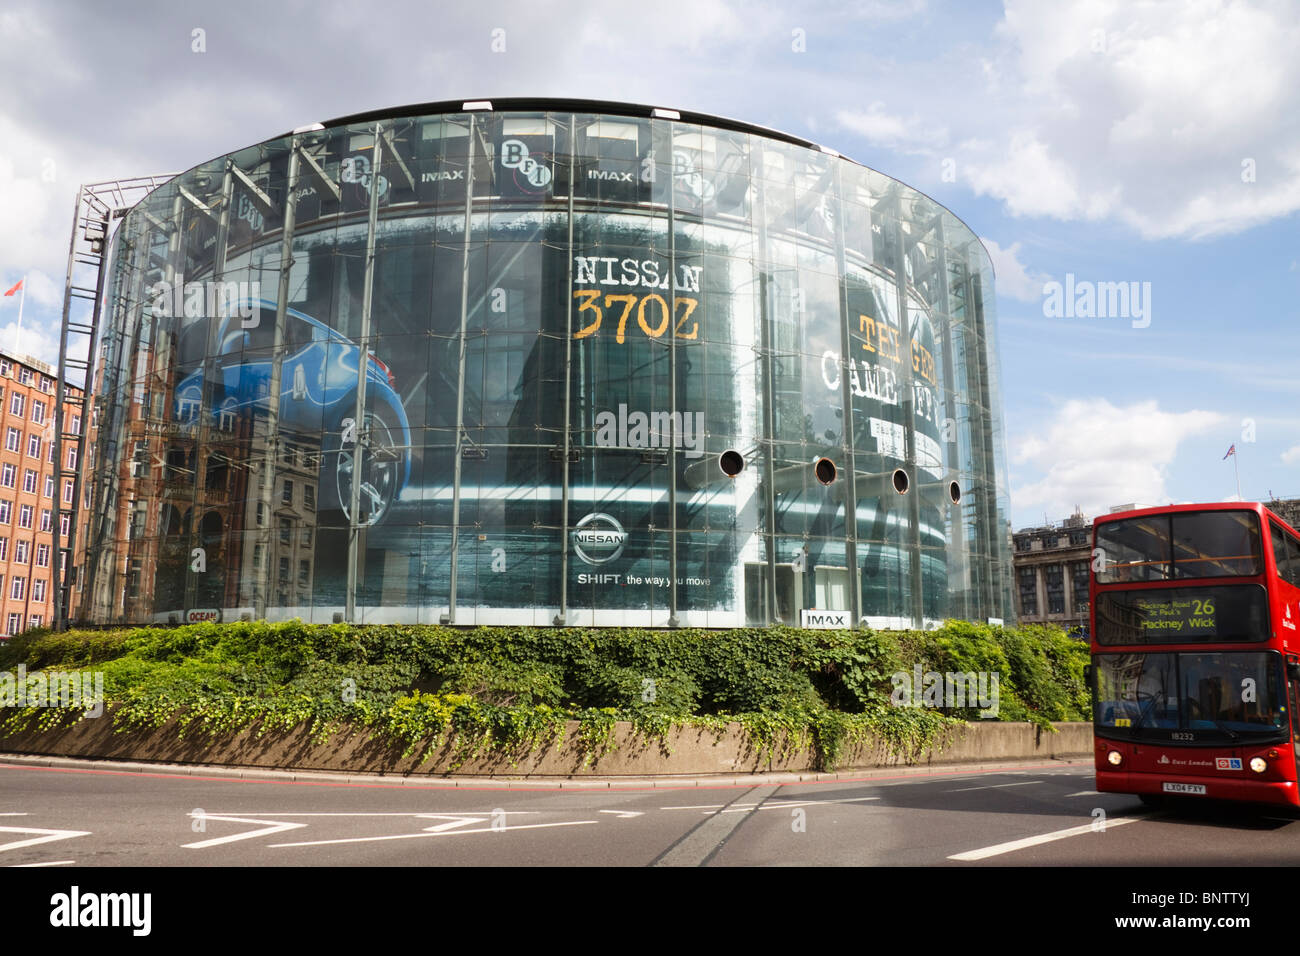 The London BFI Imax building with a red London bus, England, UK - Stock Image